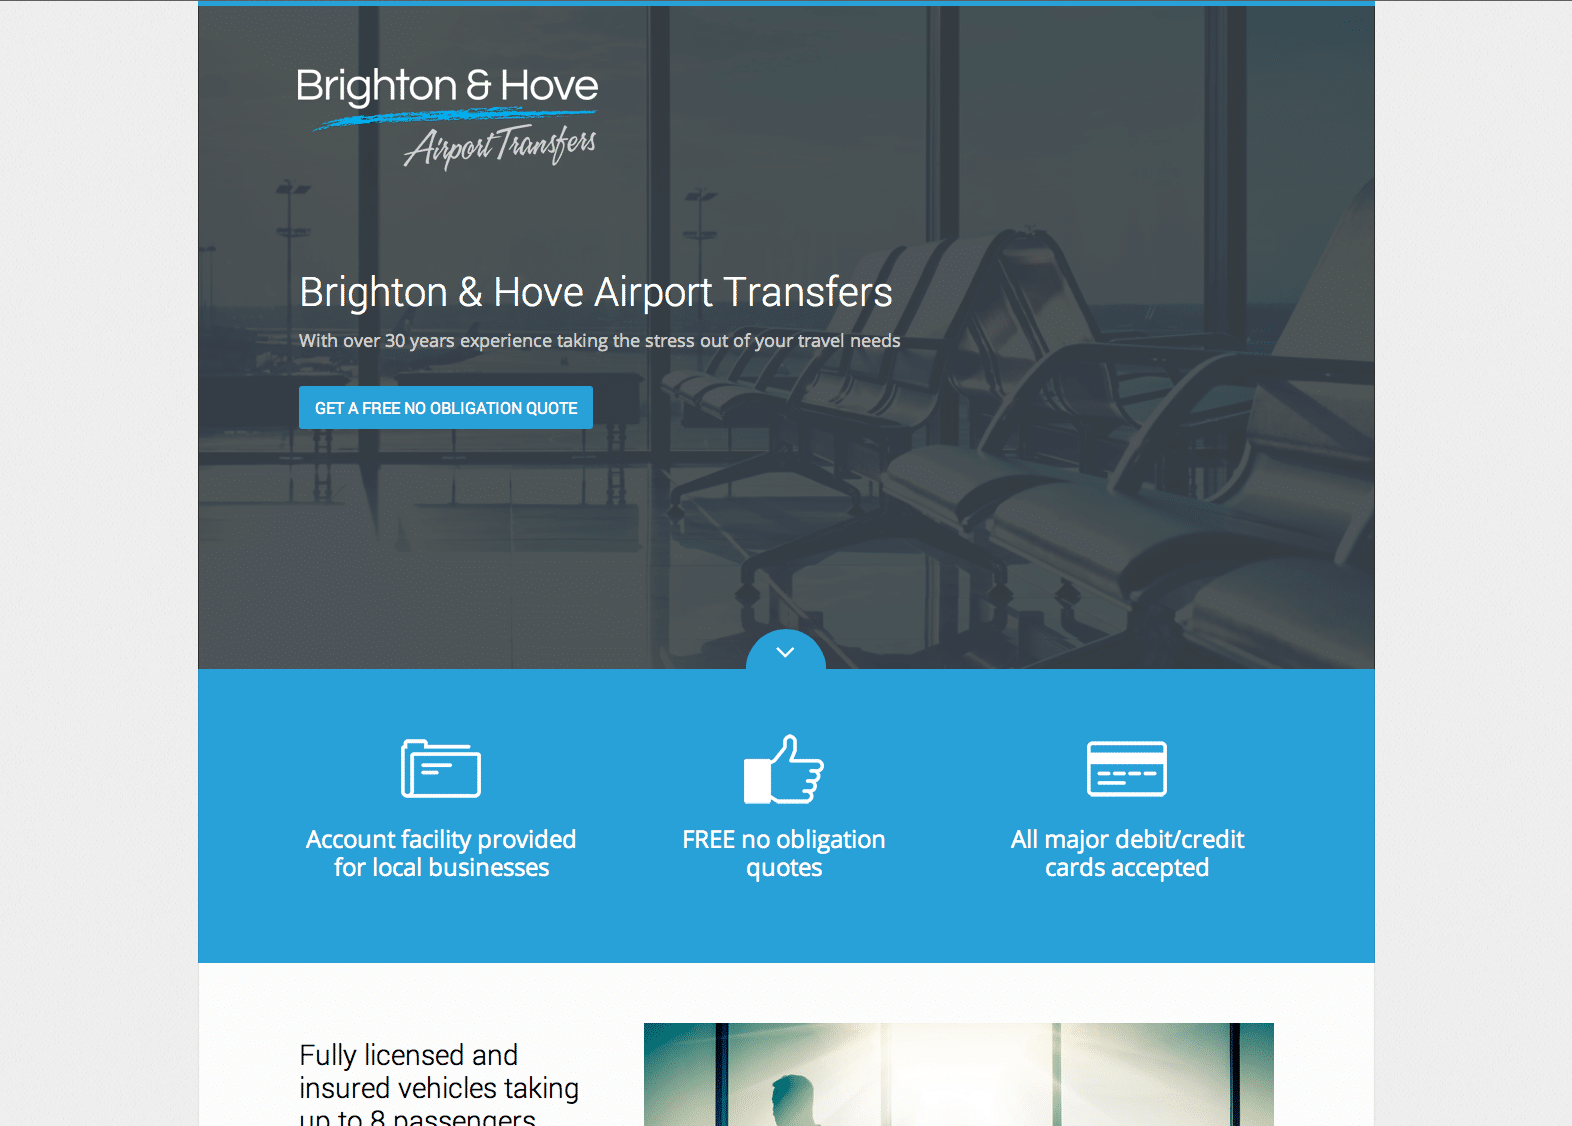 Brighton & Hove Airport Transfers website